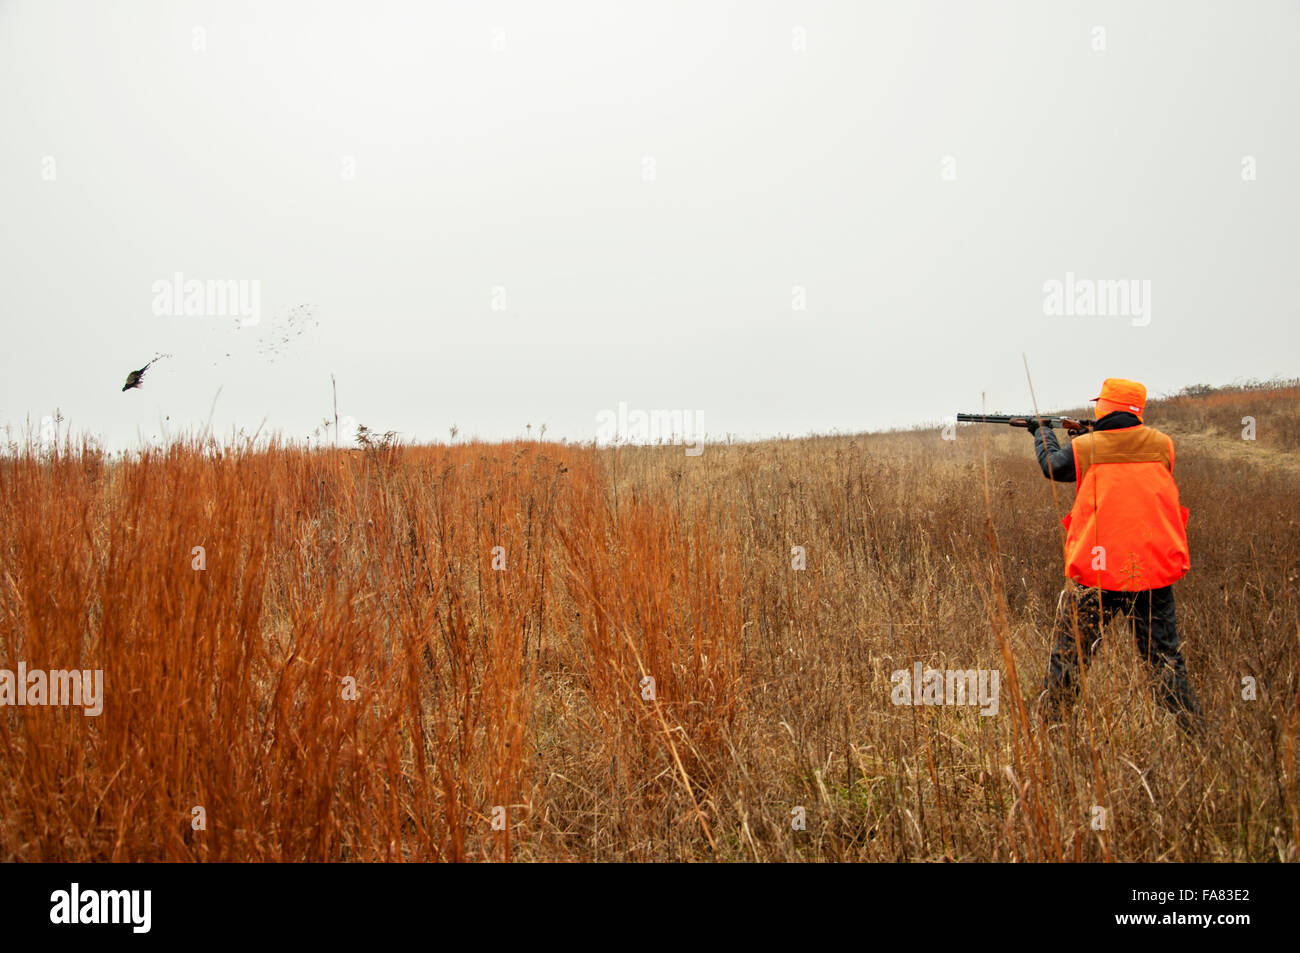 Boy stands in field shooting pheasant - Stock Image